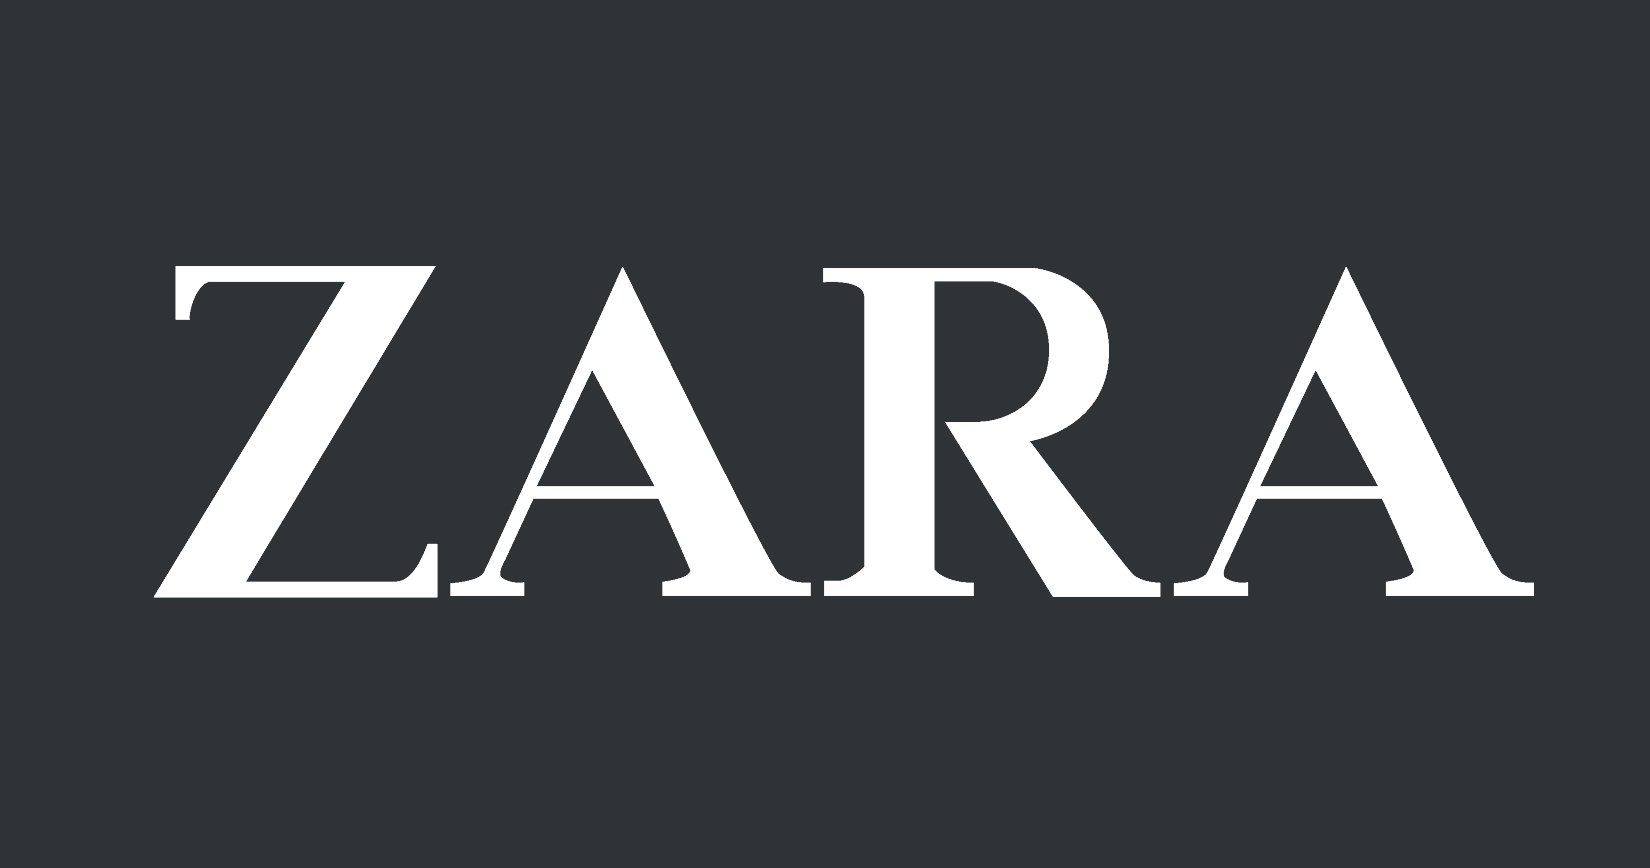 zara logo zara symbol meaning history and evolution. Black Bedroom Furniture Sets. Home Design Ideas